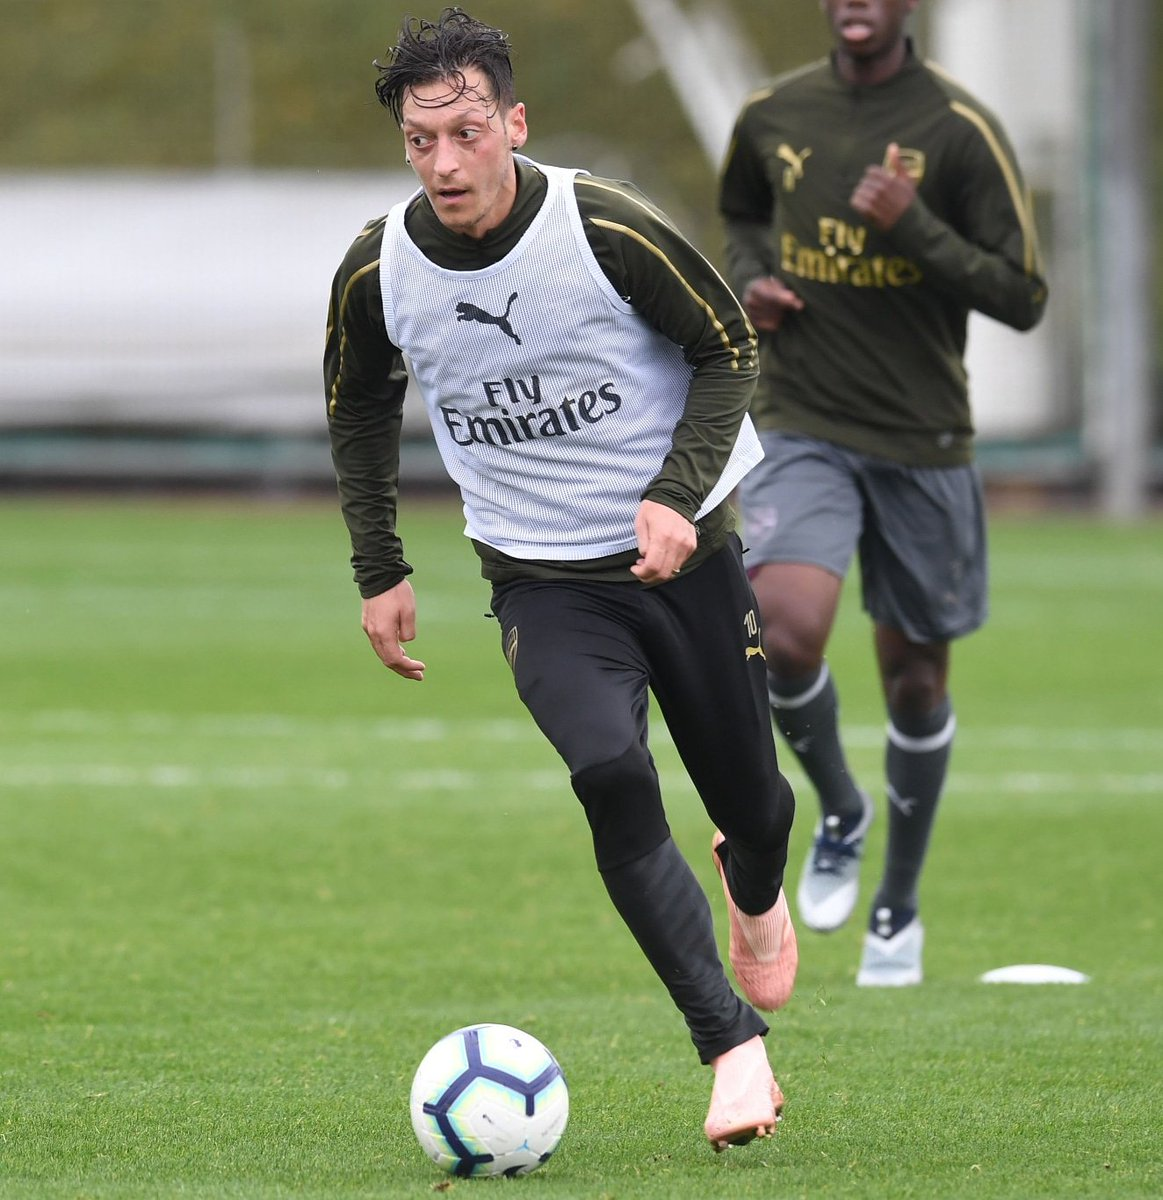 The most important match is always the next one. 🤓⚽ Let's get prepared for Leicester 💥 #YaGunnersYa #M1Ö #COYG @Arsenal